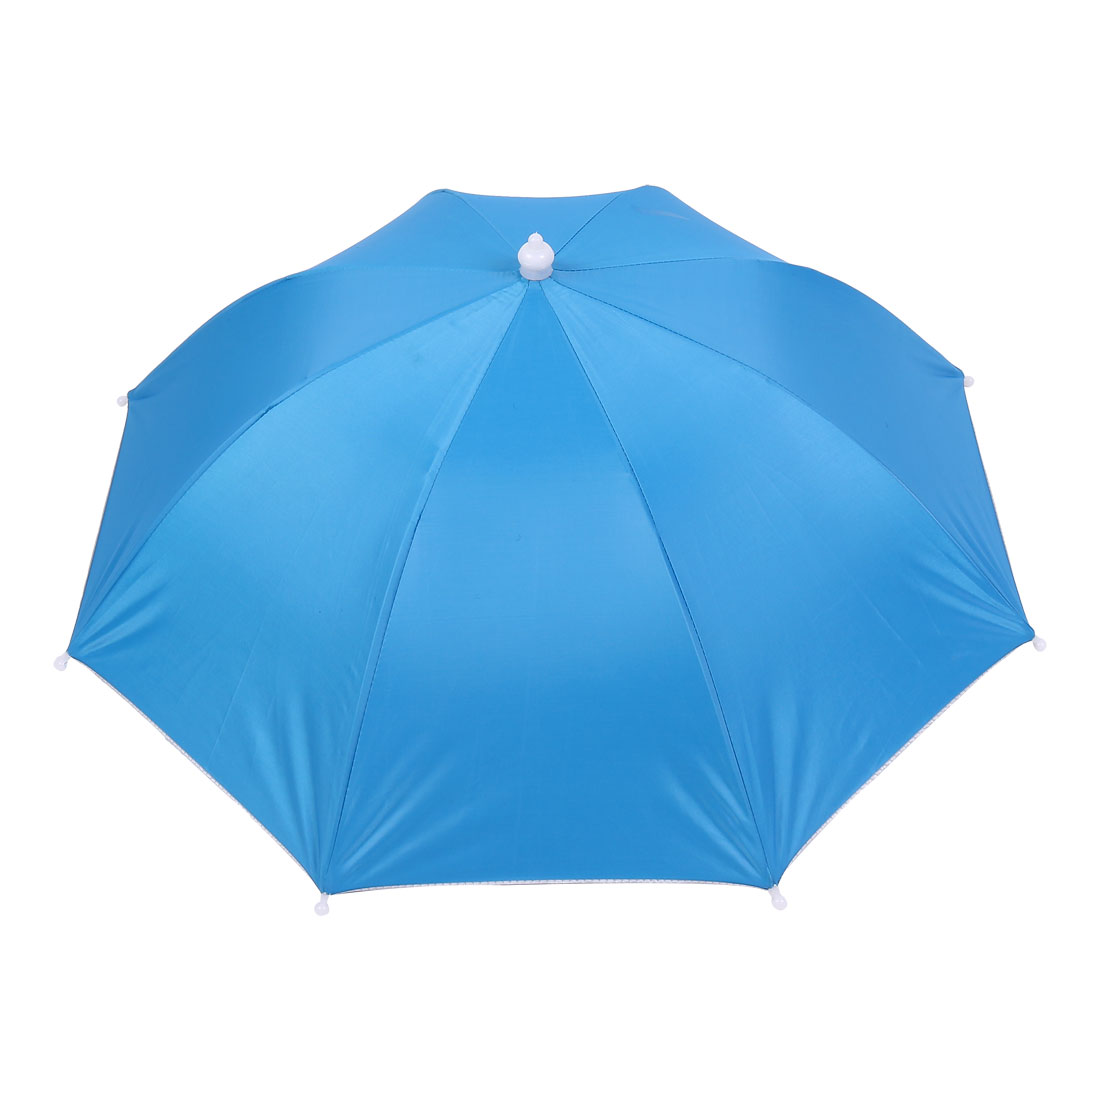 Travel Camping Baby Blue Polyester Foldable Sun Umbrella Hat